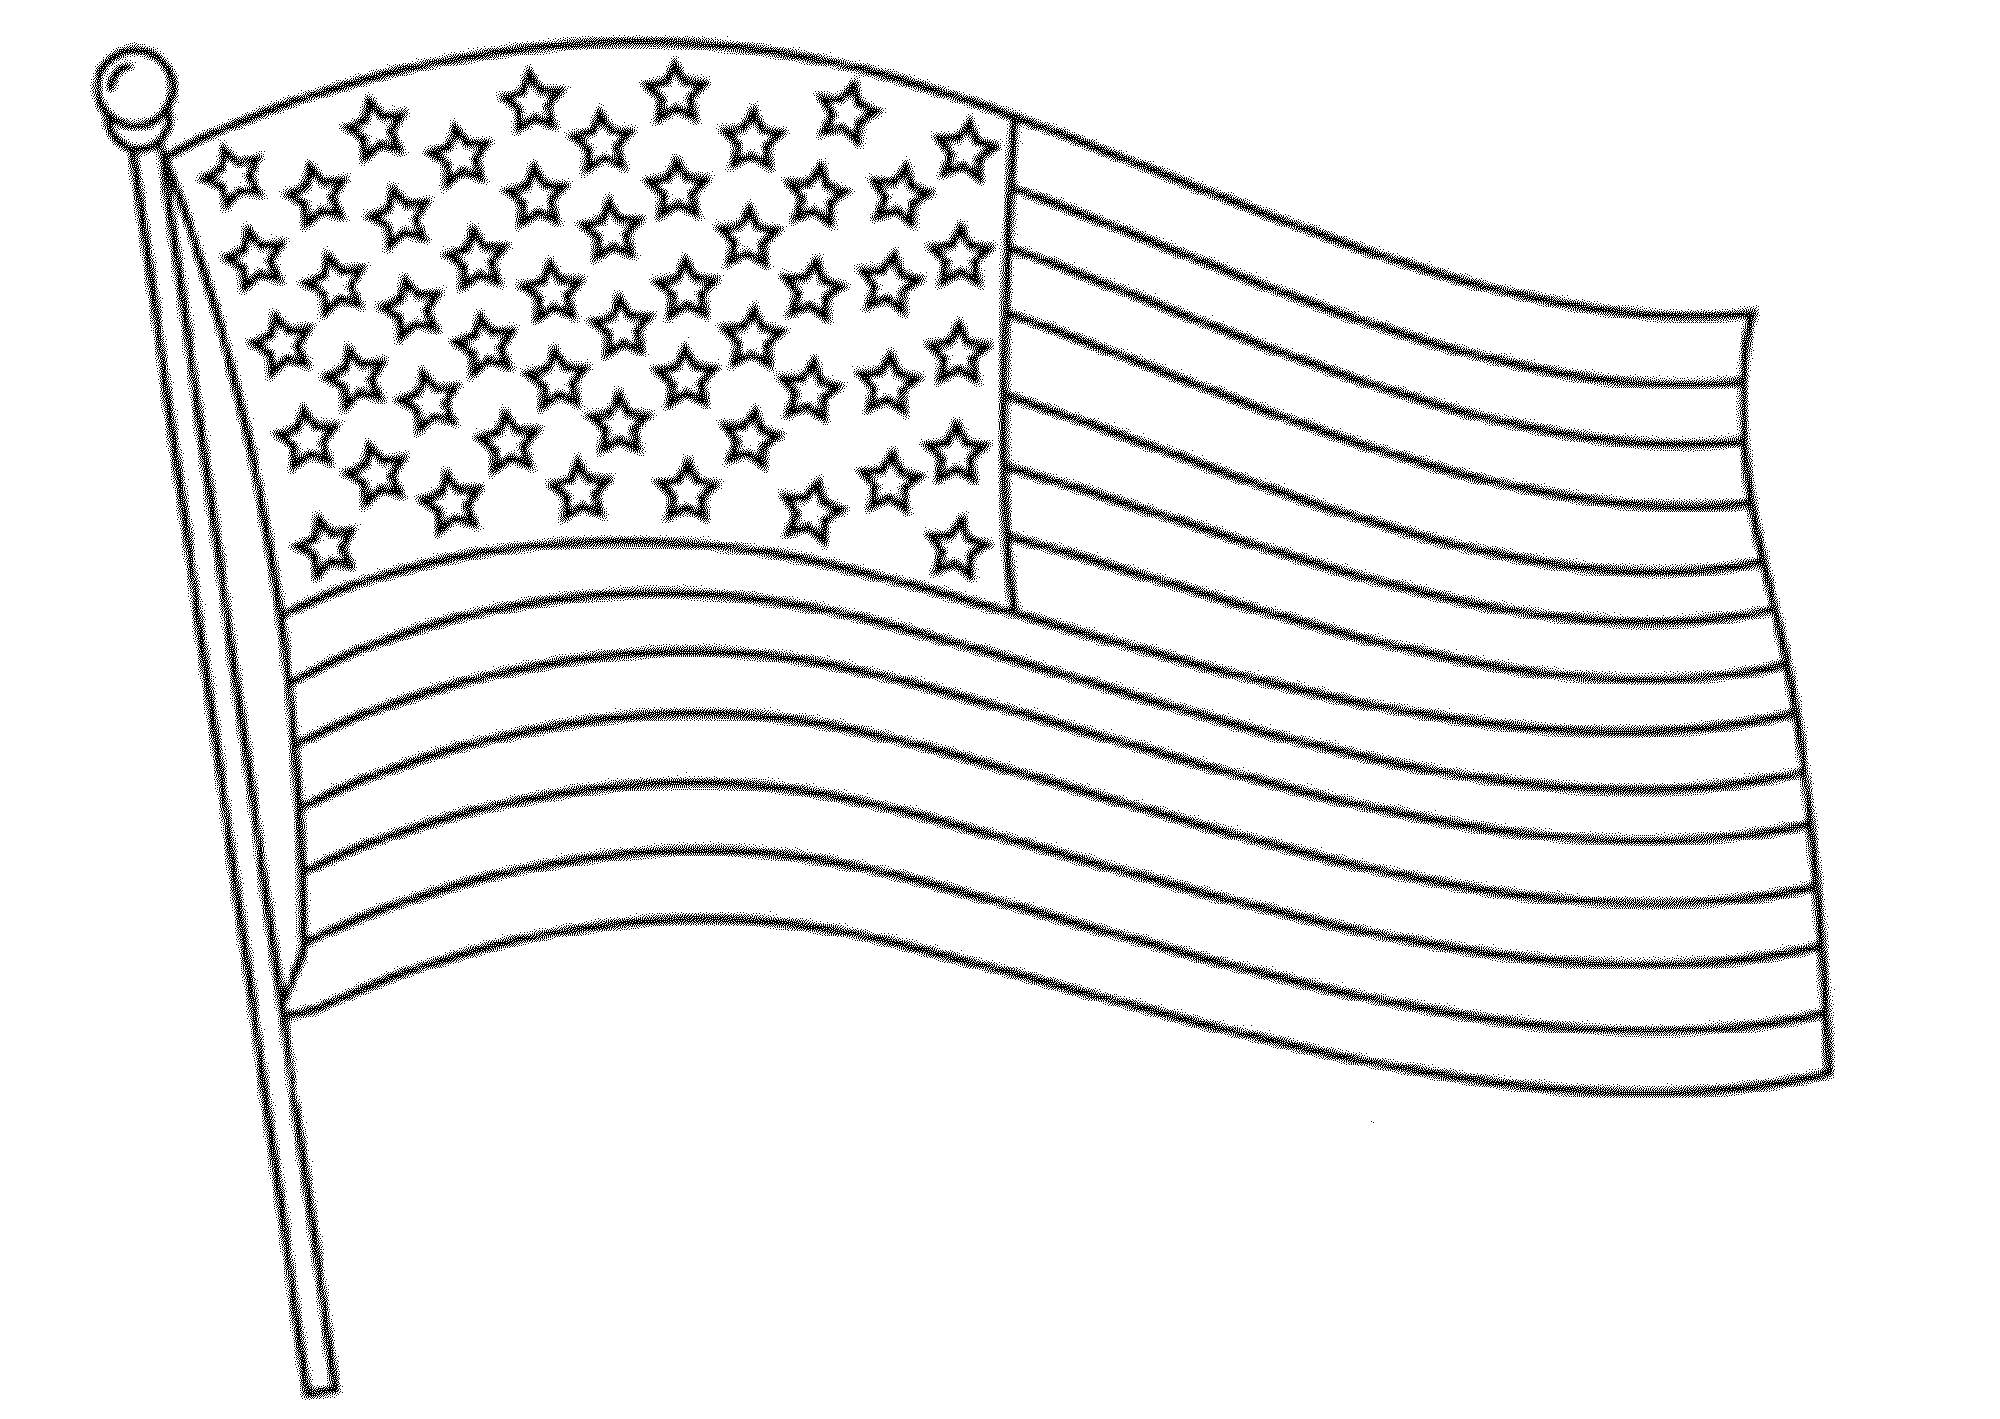 Afro American Flag Clipart 20 Free Cliparts